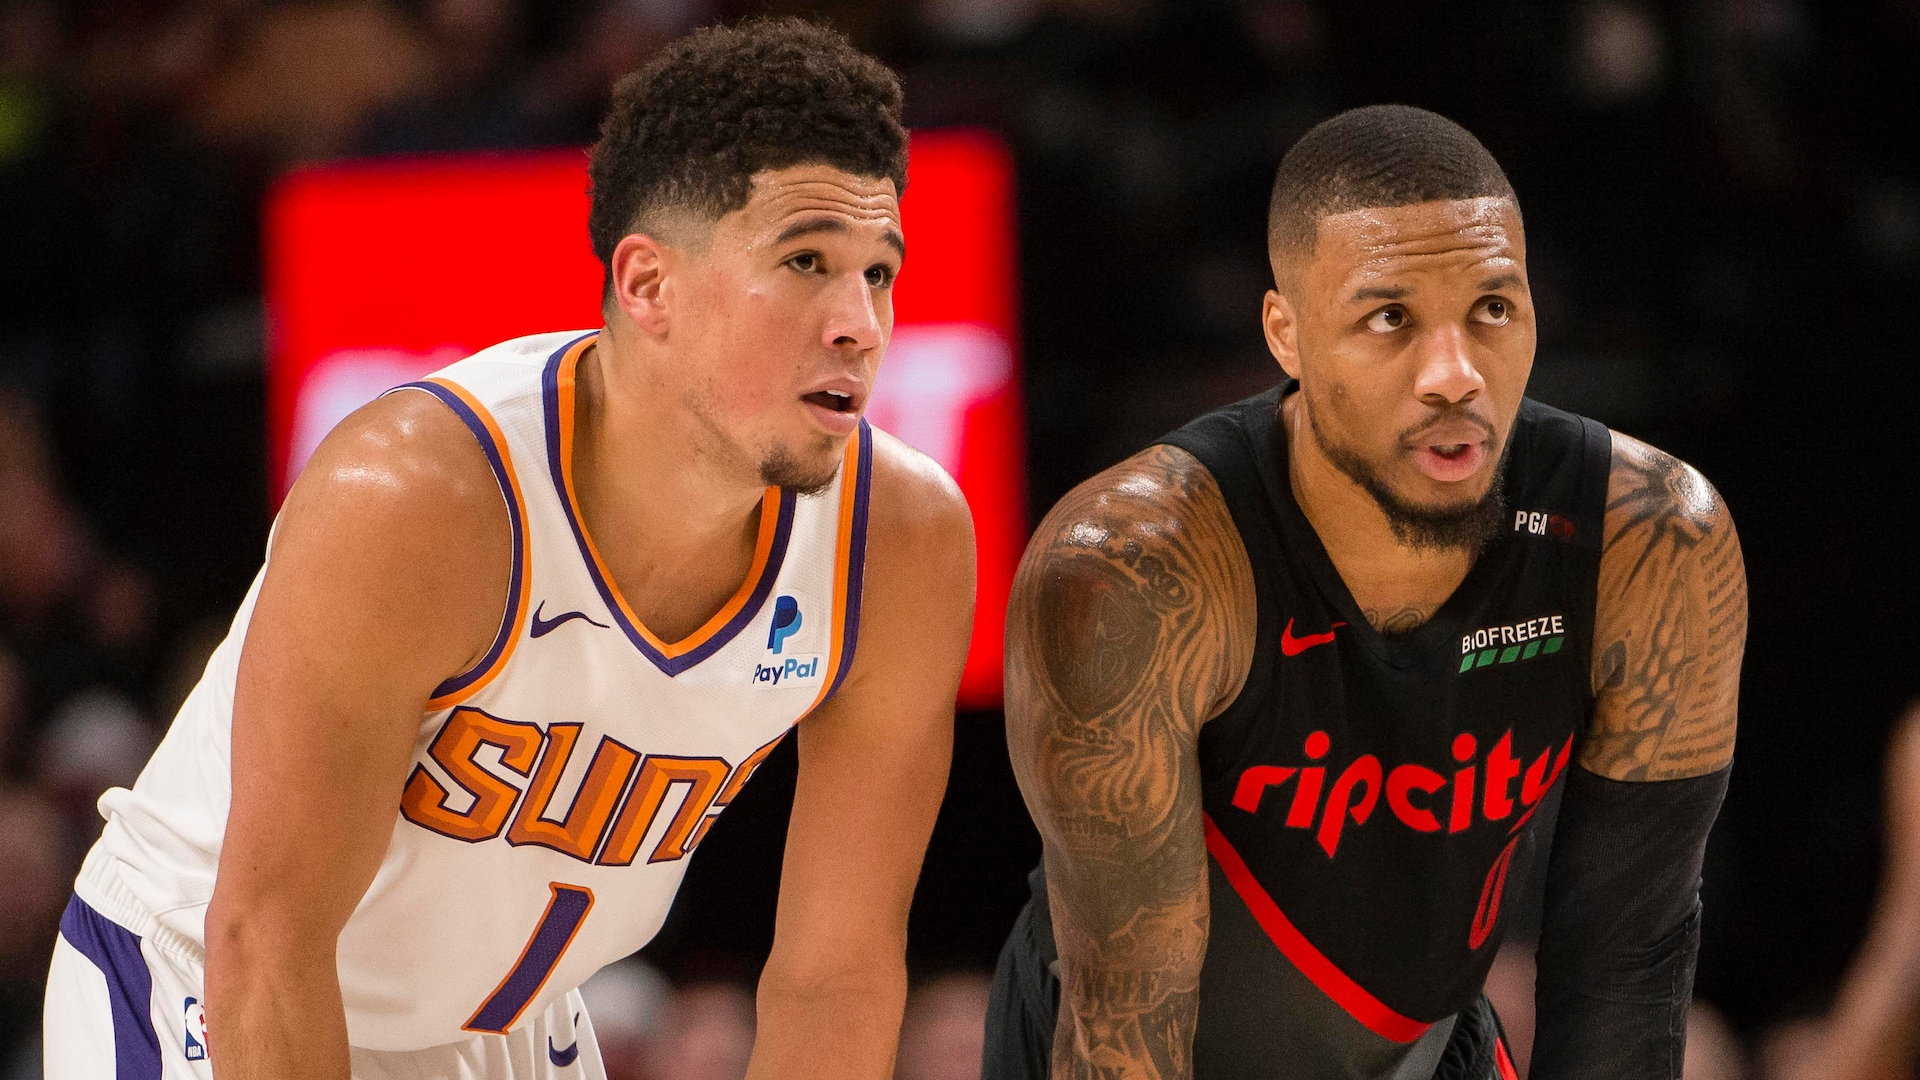 Phoenix's Booker to replace Portland's Lillard in 2020 NBA All-Star Game and MTN DEW 3-Point Contest